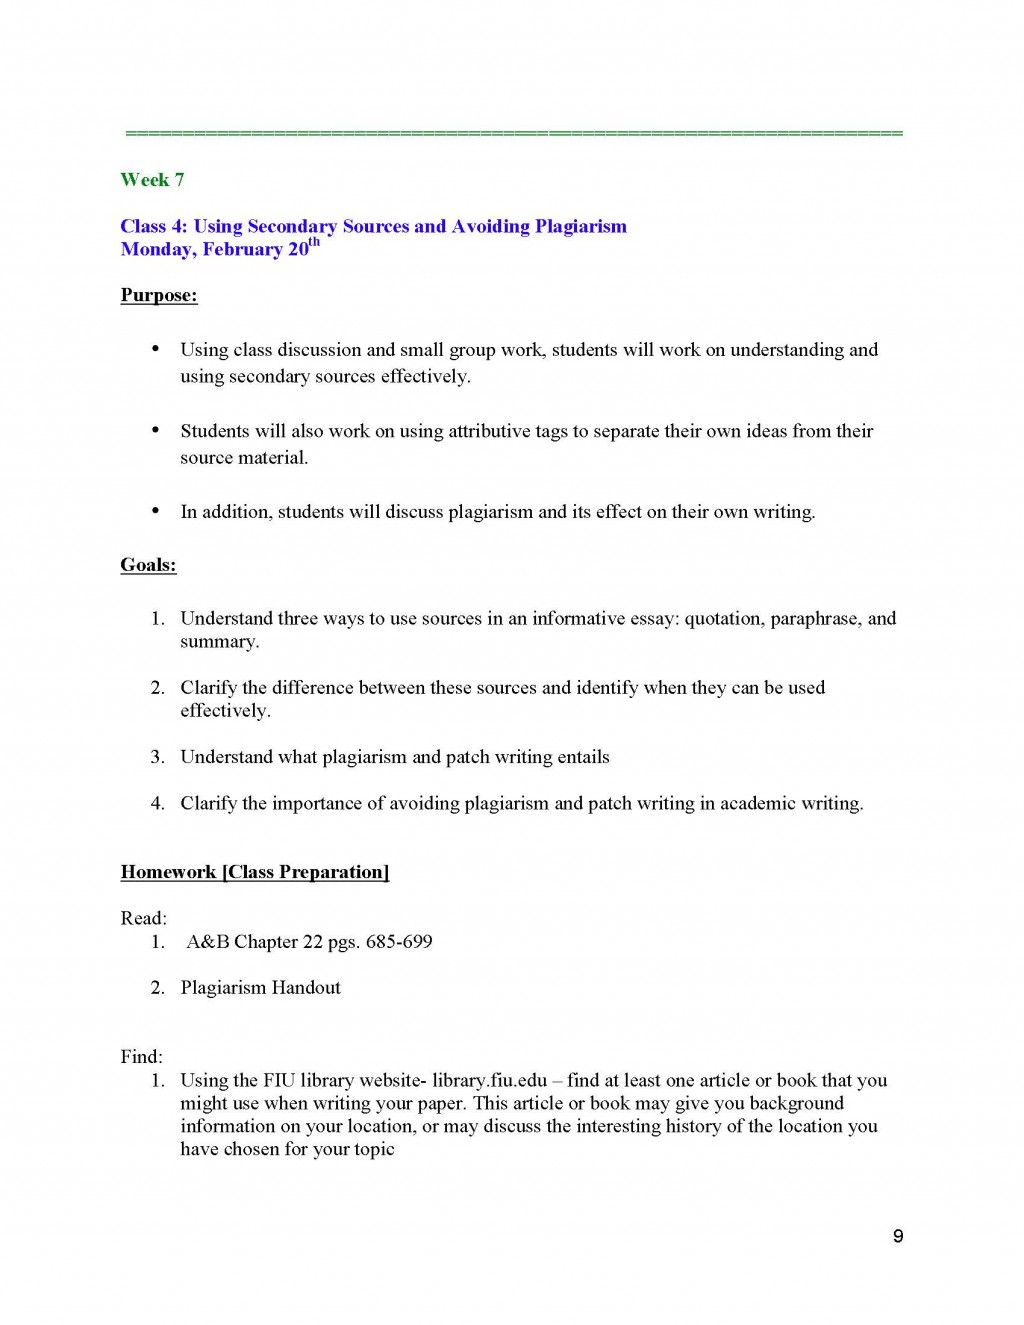 017 Informative Essay Thesis Example Unit 2 Plans Instructor Copy Page 09 Unusual Template How To Write An Statement Large